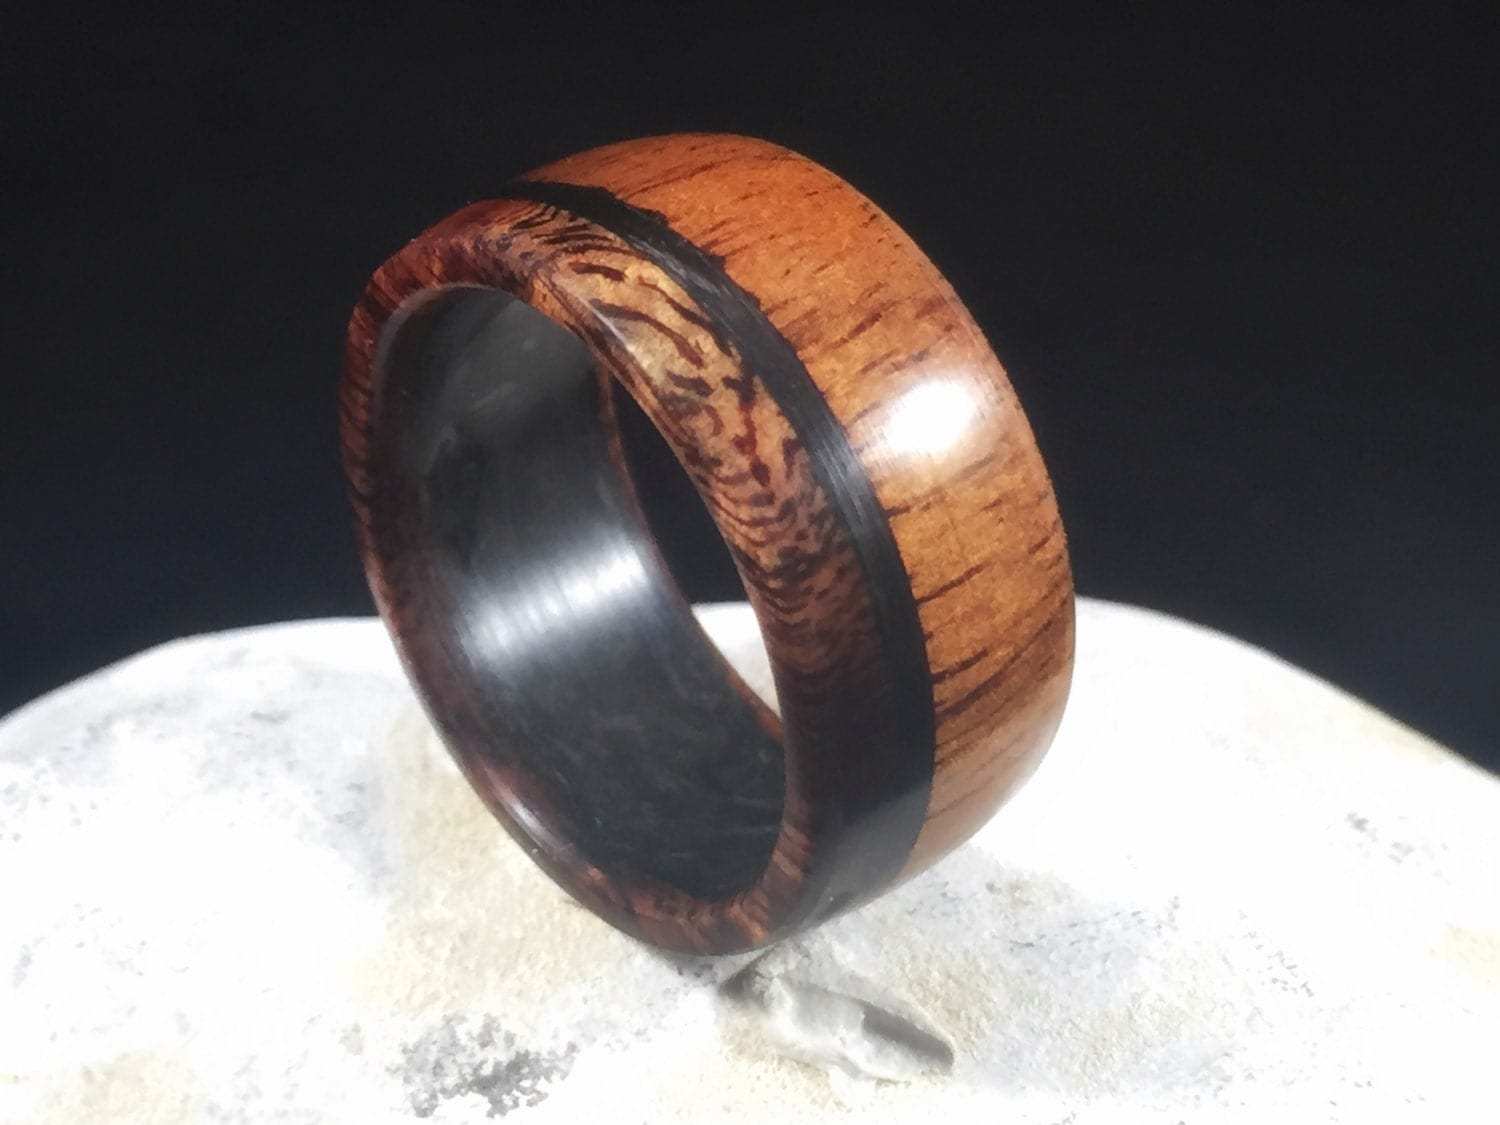 hawaiian ring wooden wedding rings Koa with carbon fiber mens wedding band wood ring wood wedding band wooden ring mens wood wedding band koa wood ring wood wedding